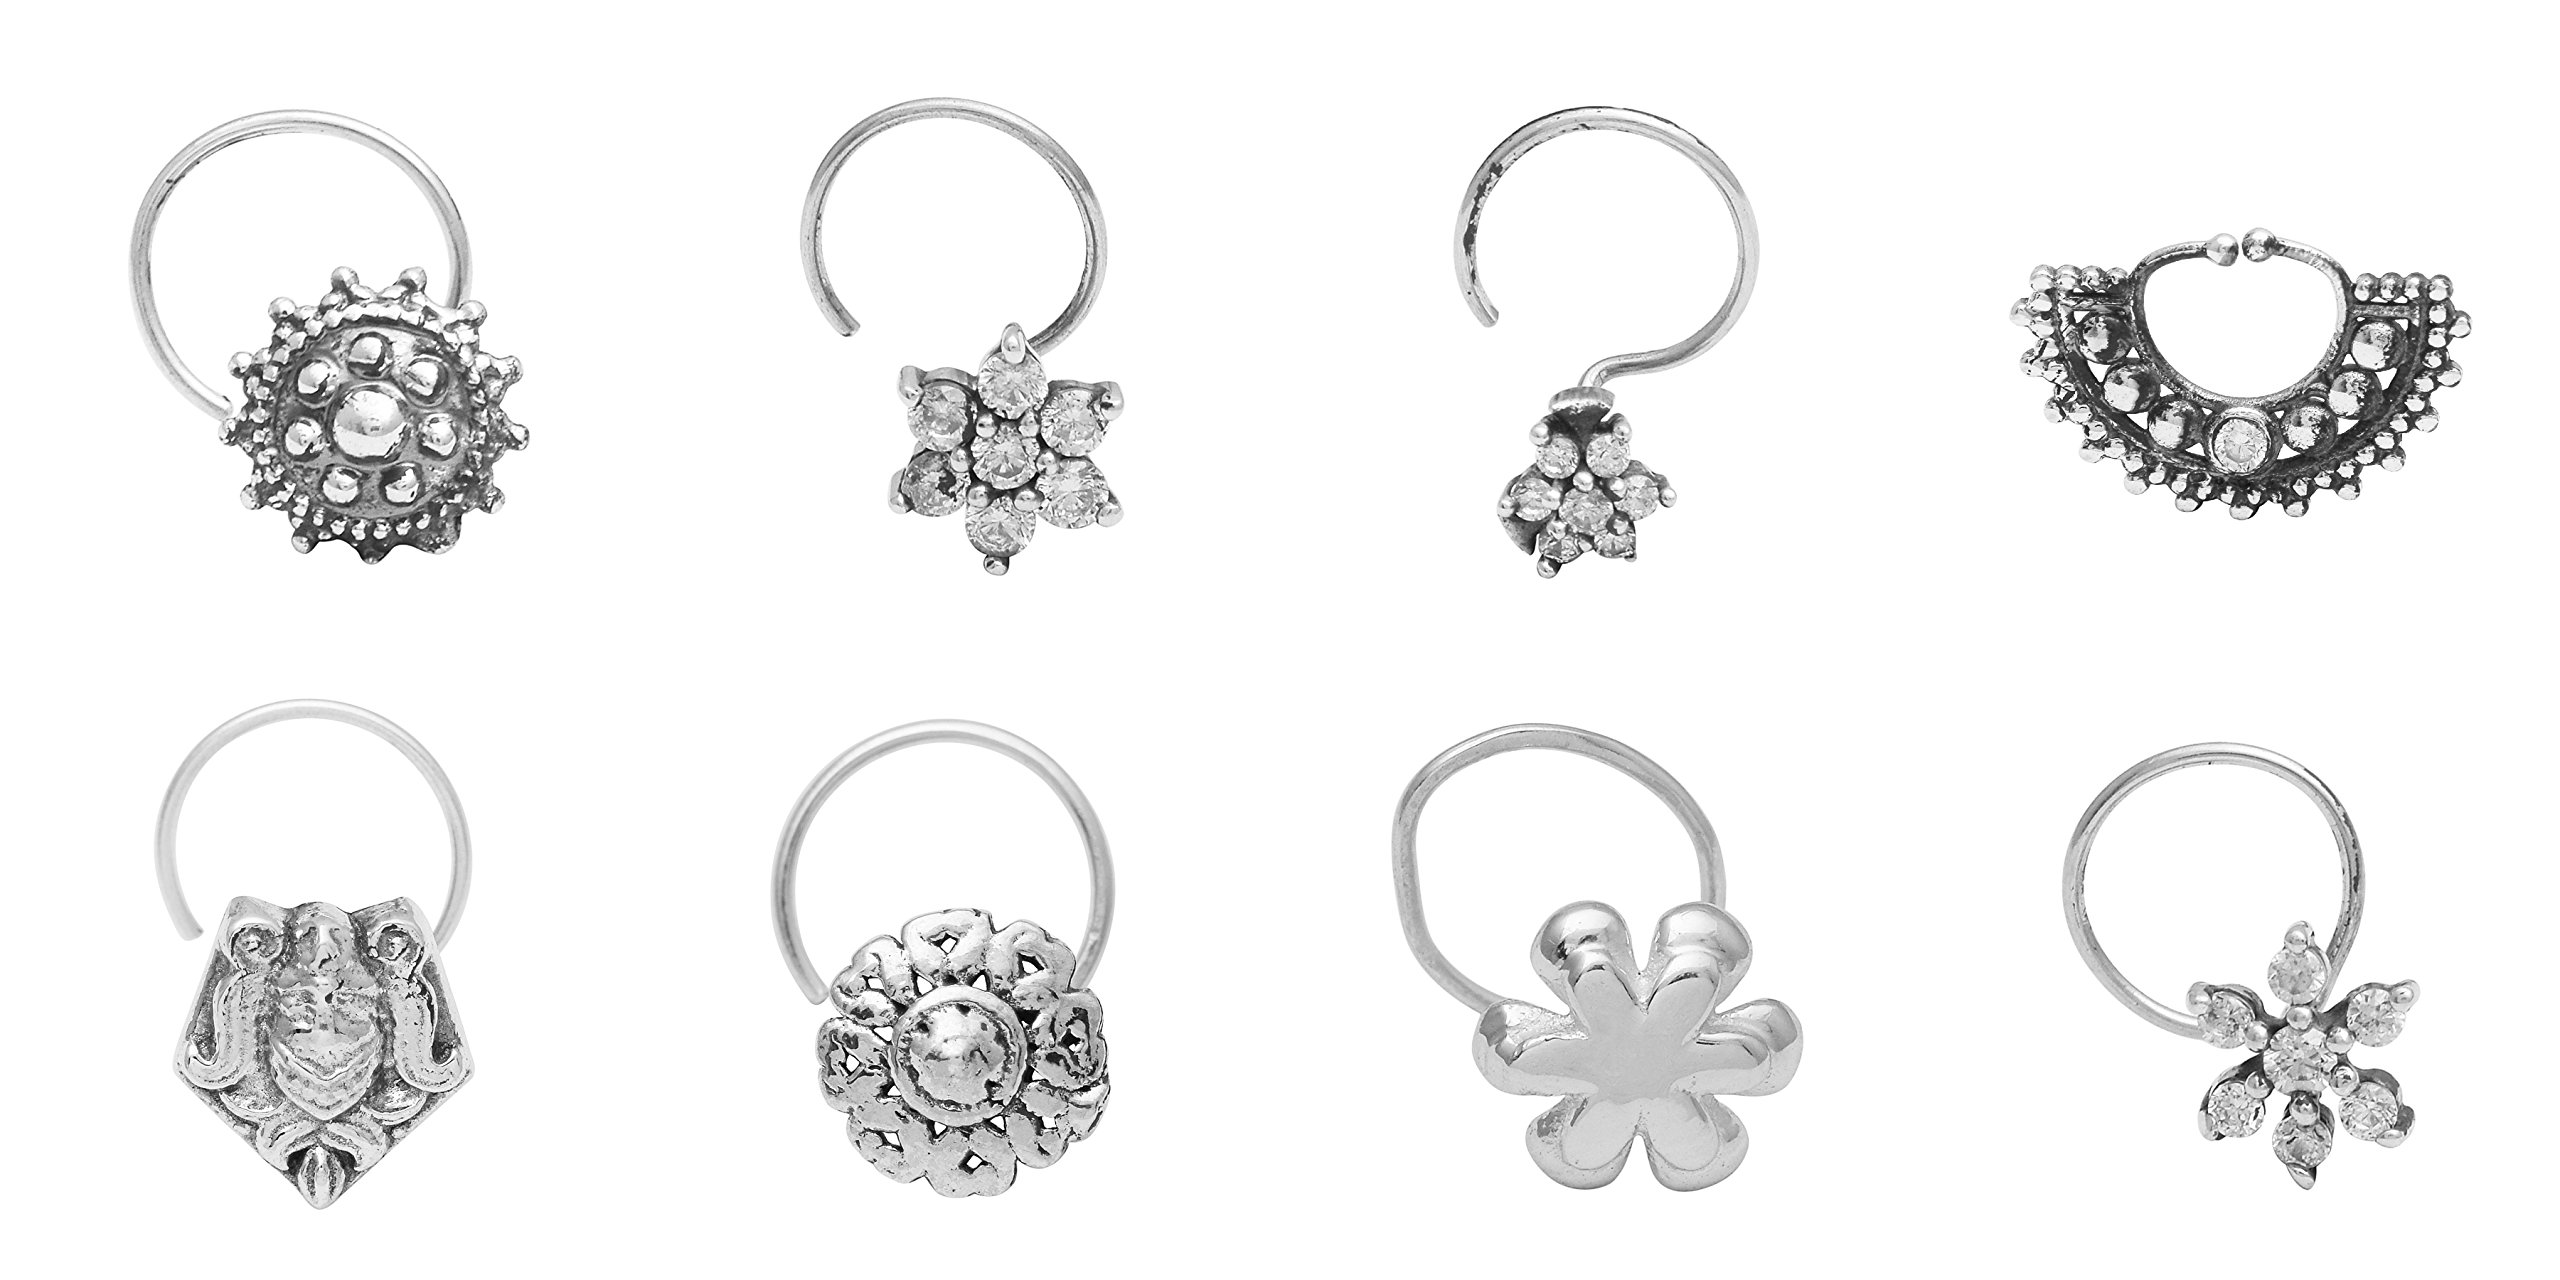 Shine Jewel Combo 8 Pcs 925 Silver Oxidized Nose Pin For Women and Girls Wedding Anniversary